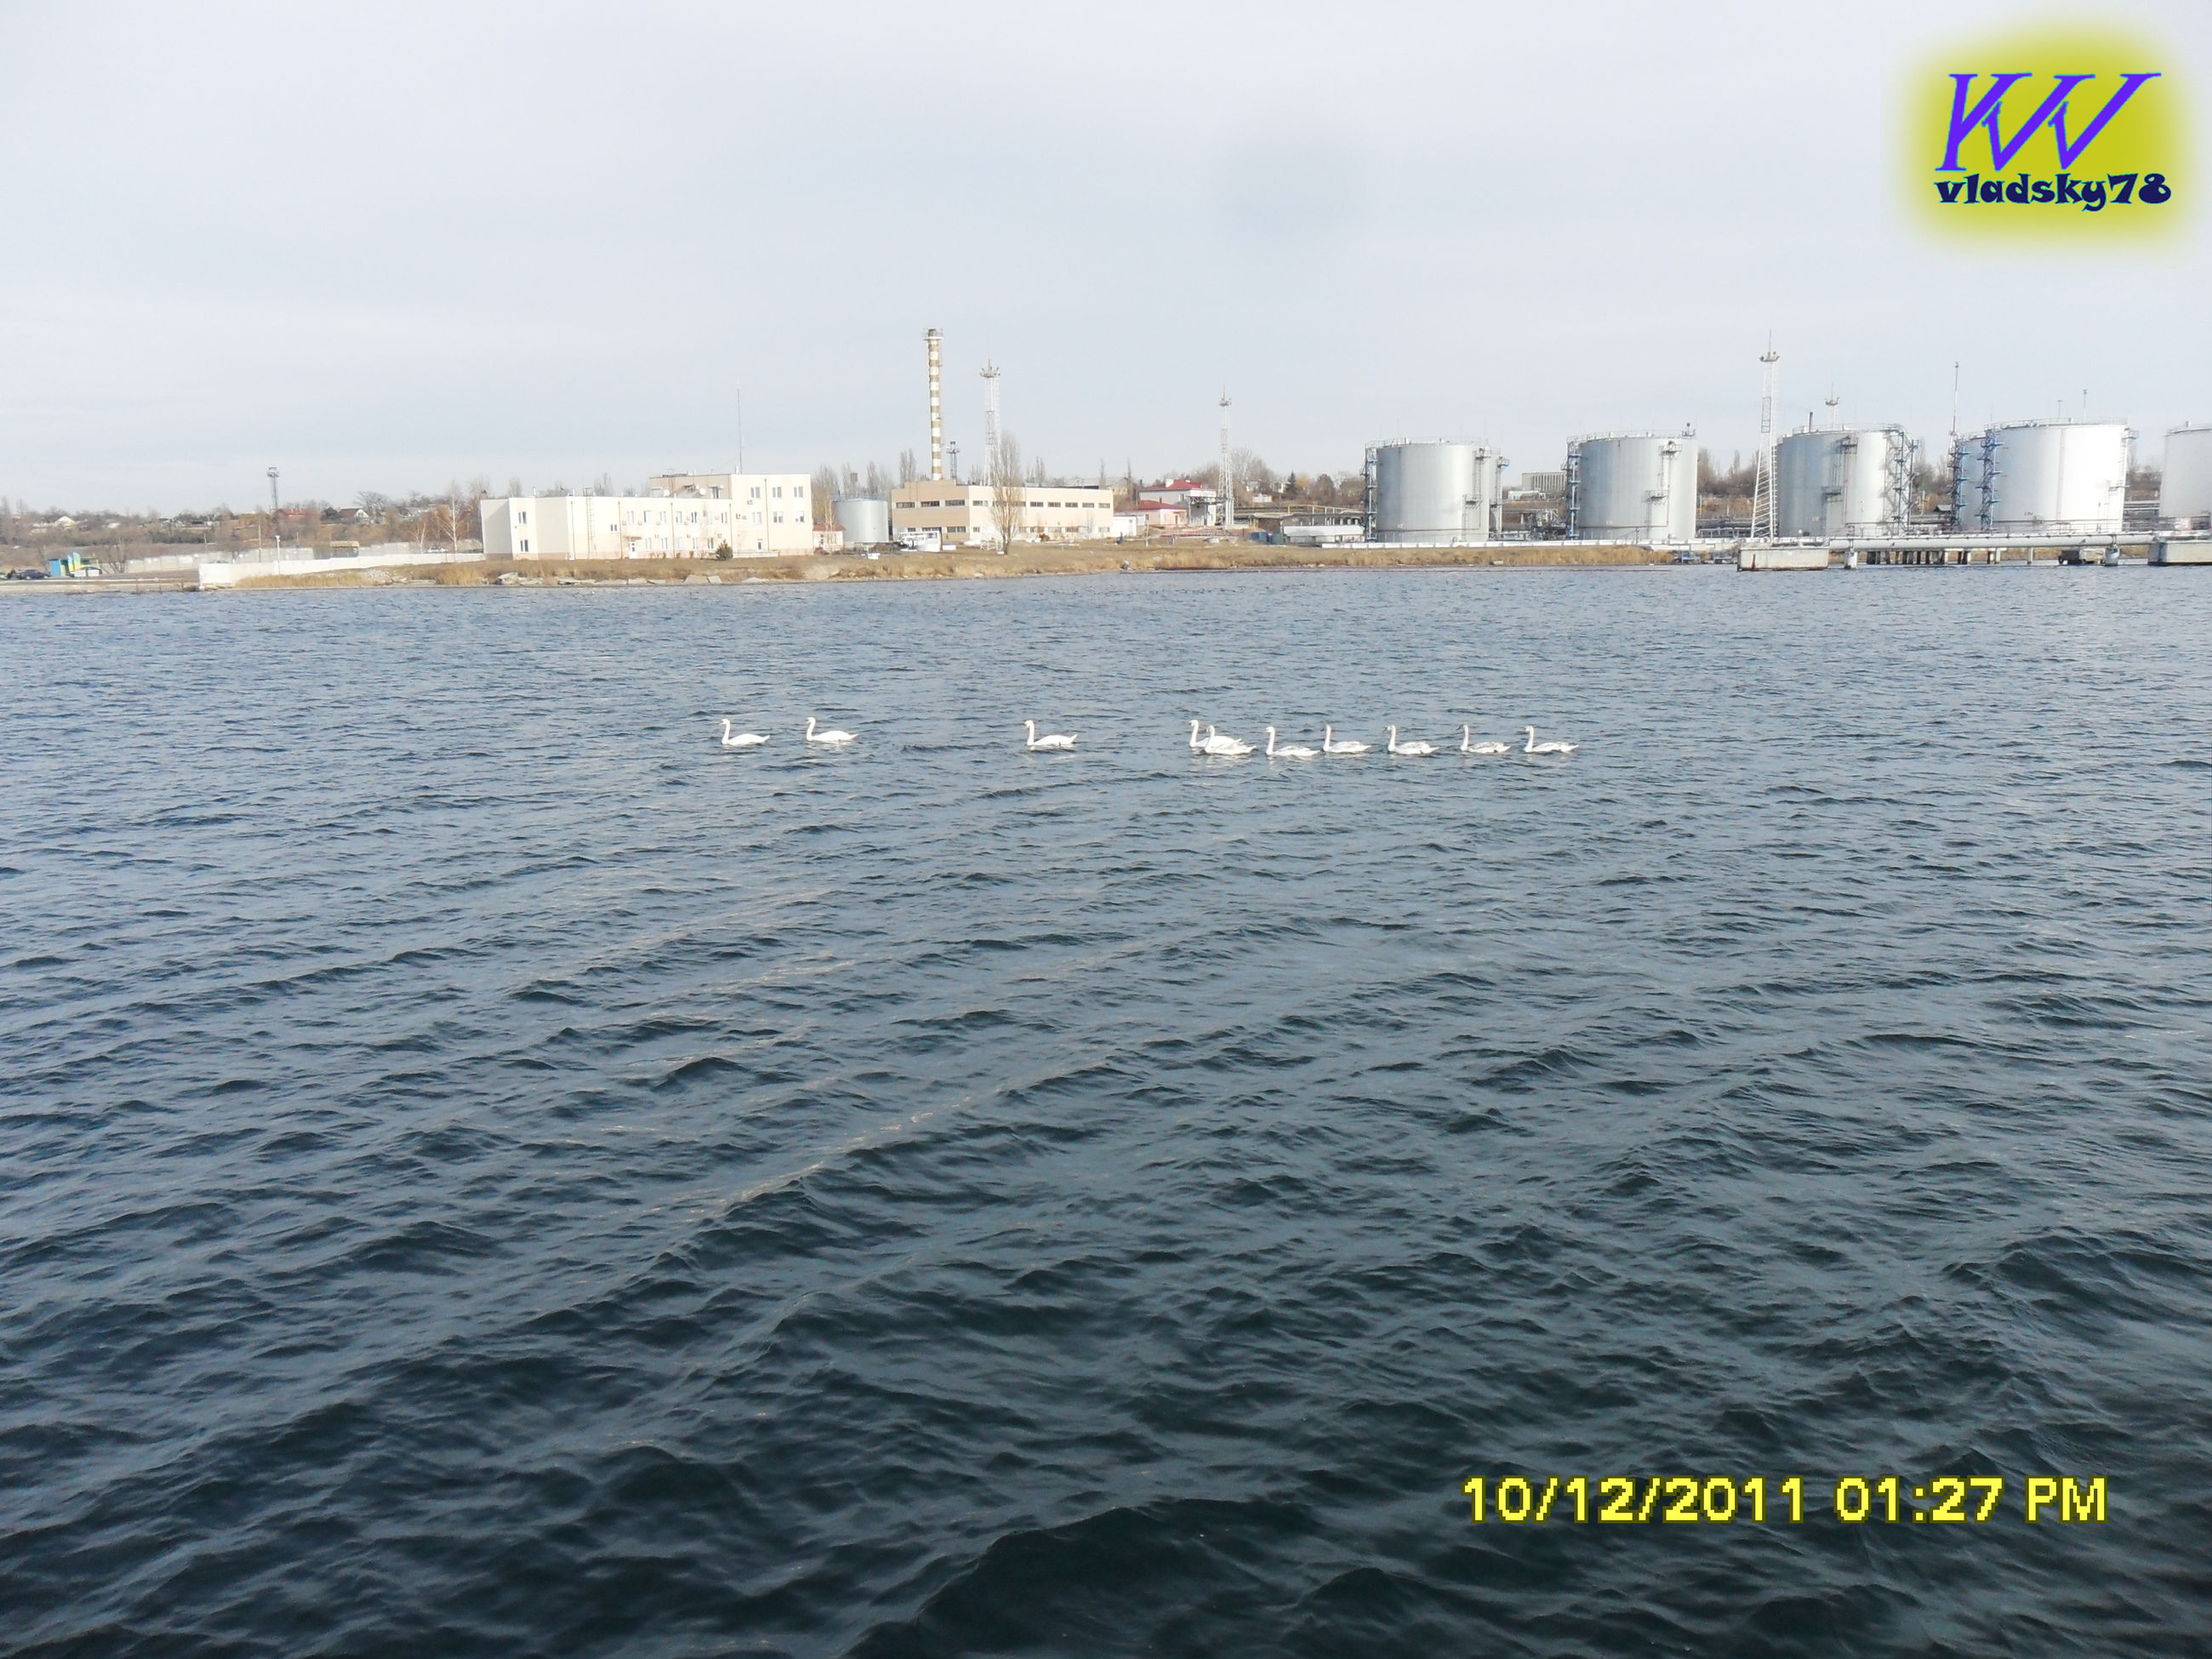 water, text, architecture, sea, communication, built structure, building exterior, outdoors, city, day, no people, nature, sky